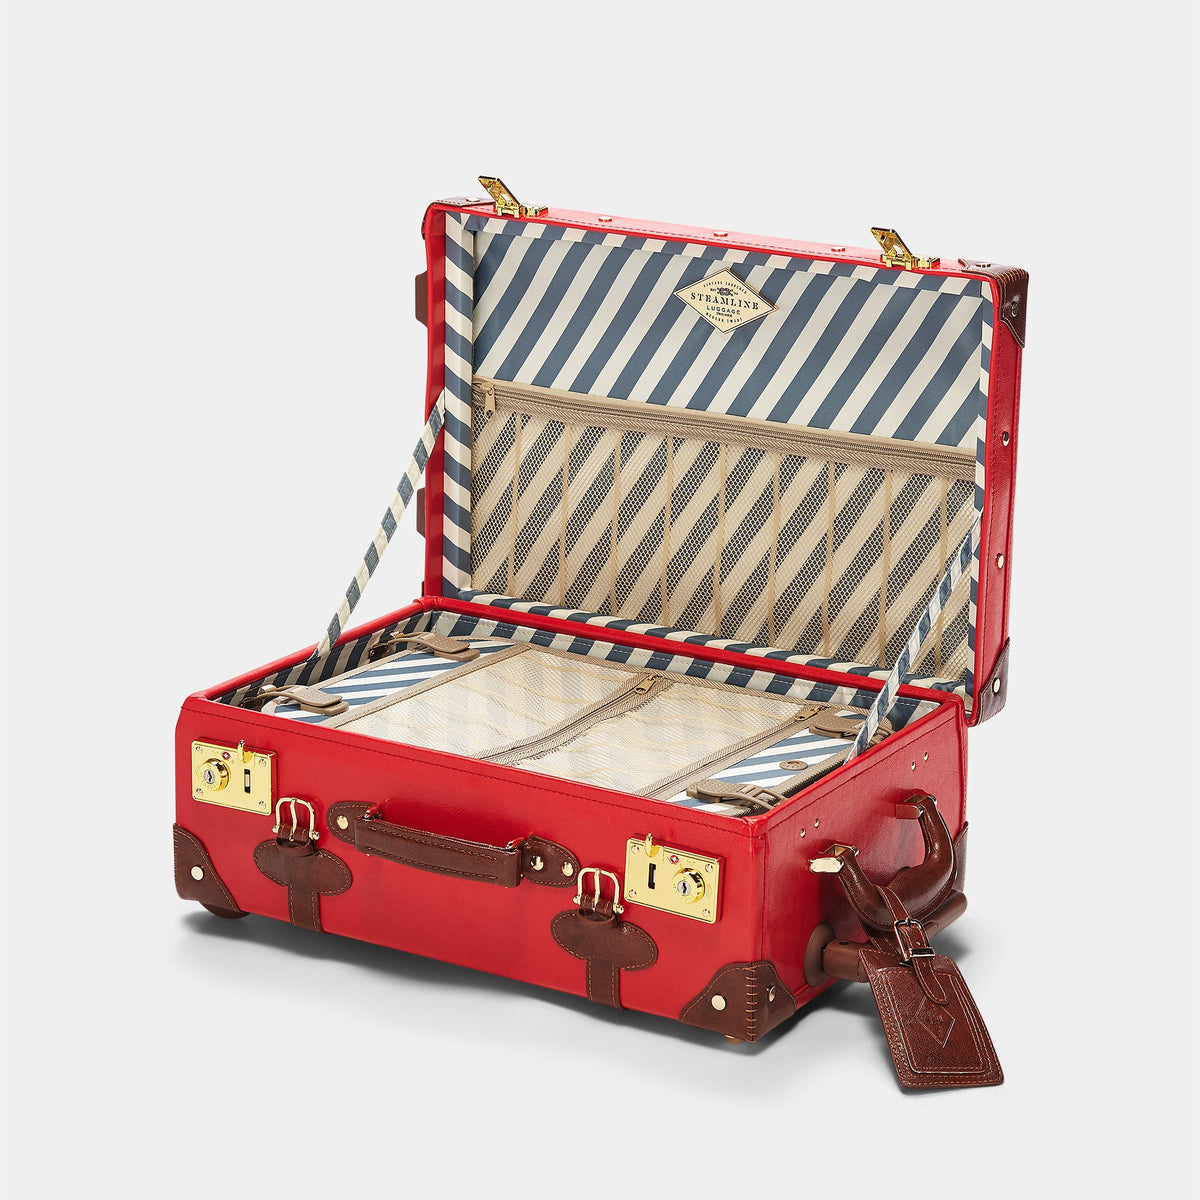 The Entrepreneur Carryon in Red - Vintage-Inspired Vegan Luggage - Interior Front